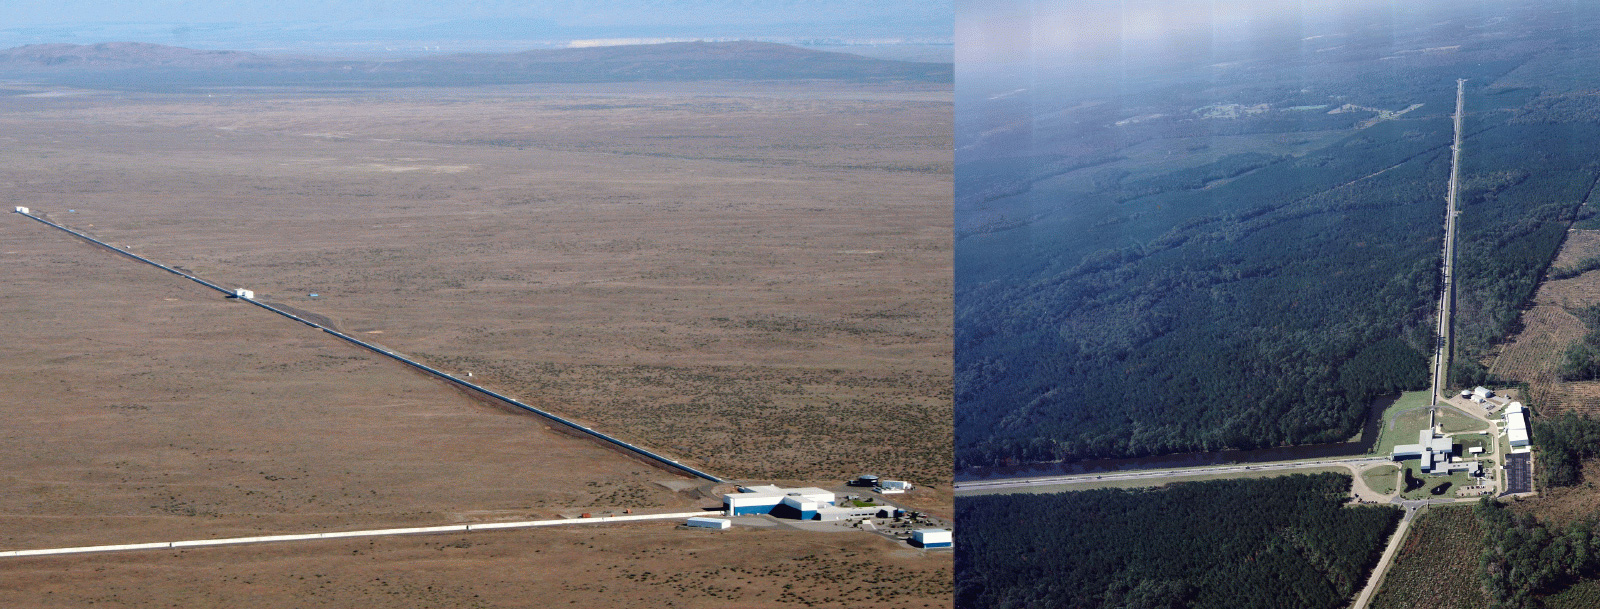 The two gravitational wave detector tubes, located about 3,000km away from each other - one in Washington State (left) and Louisiana (right).